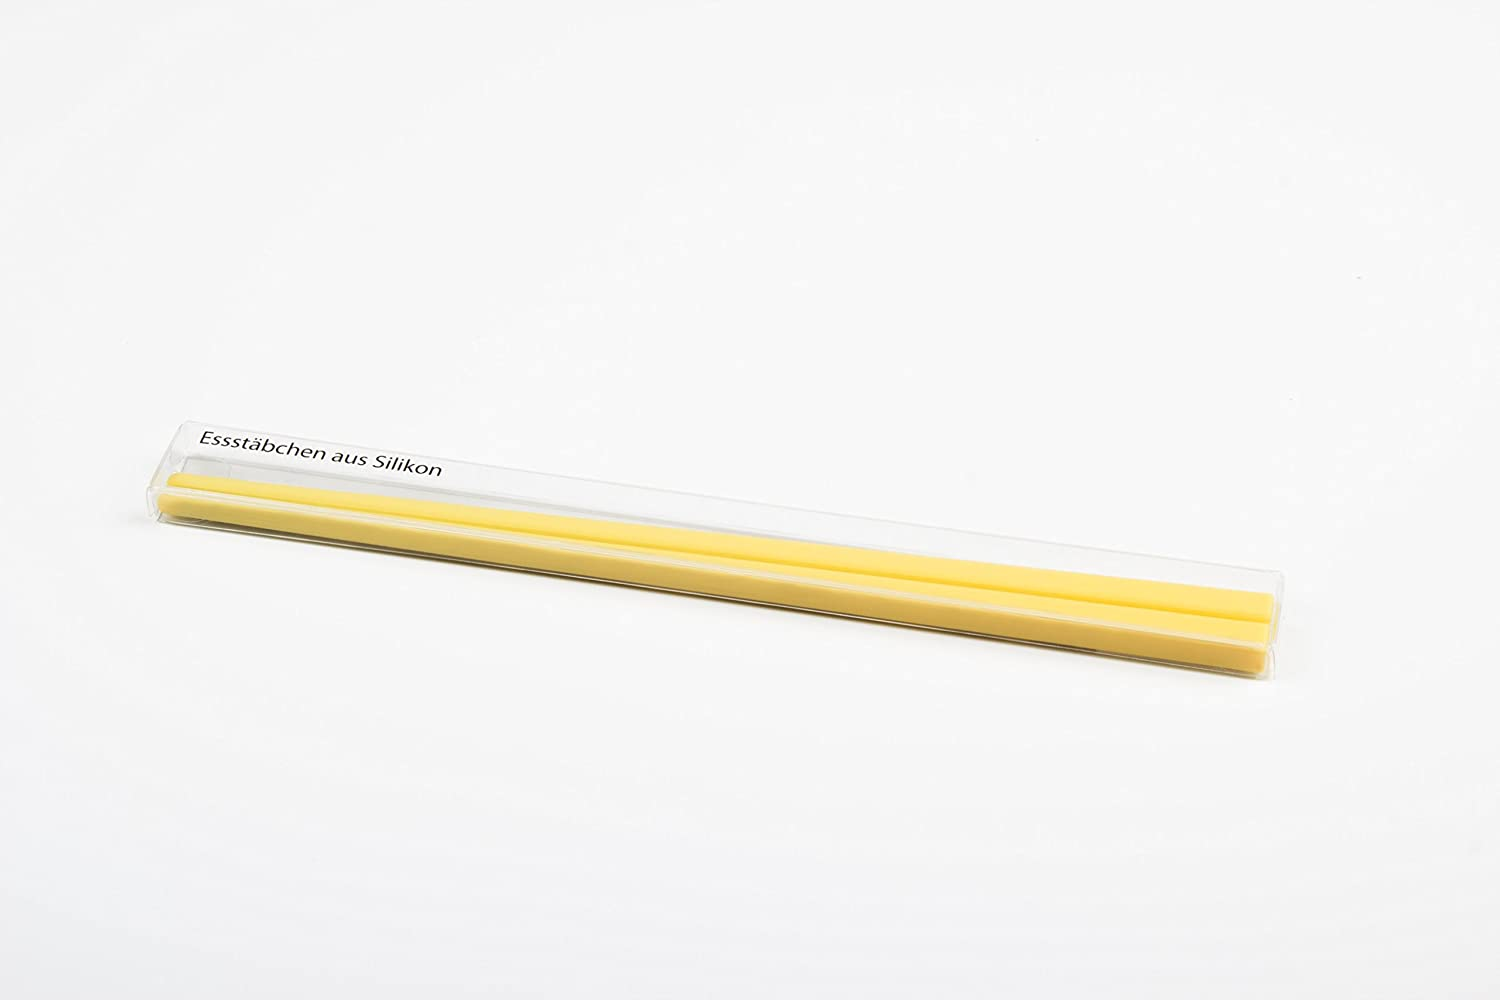 Chopsticks made of silicone, yellow, 21 cm long, 1 pair Sonstige